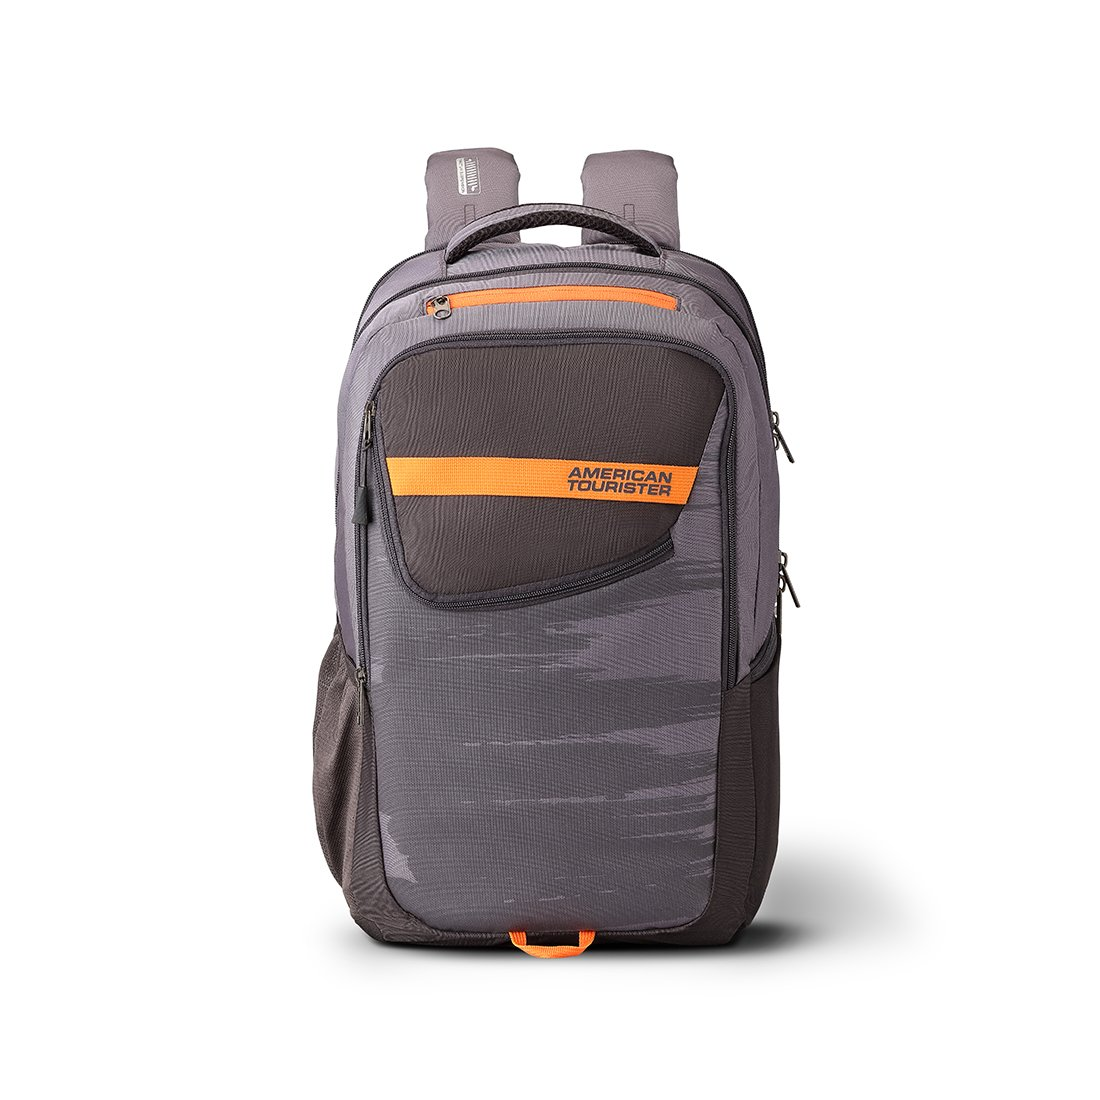 American Tourister Caspar Nxt 22 Ltrs Grey Laptop Backpack